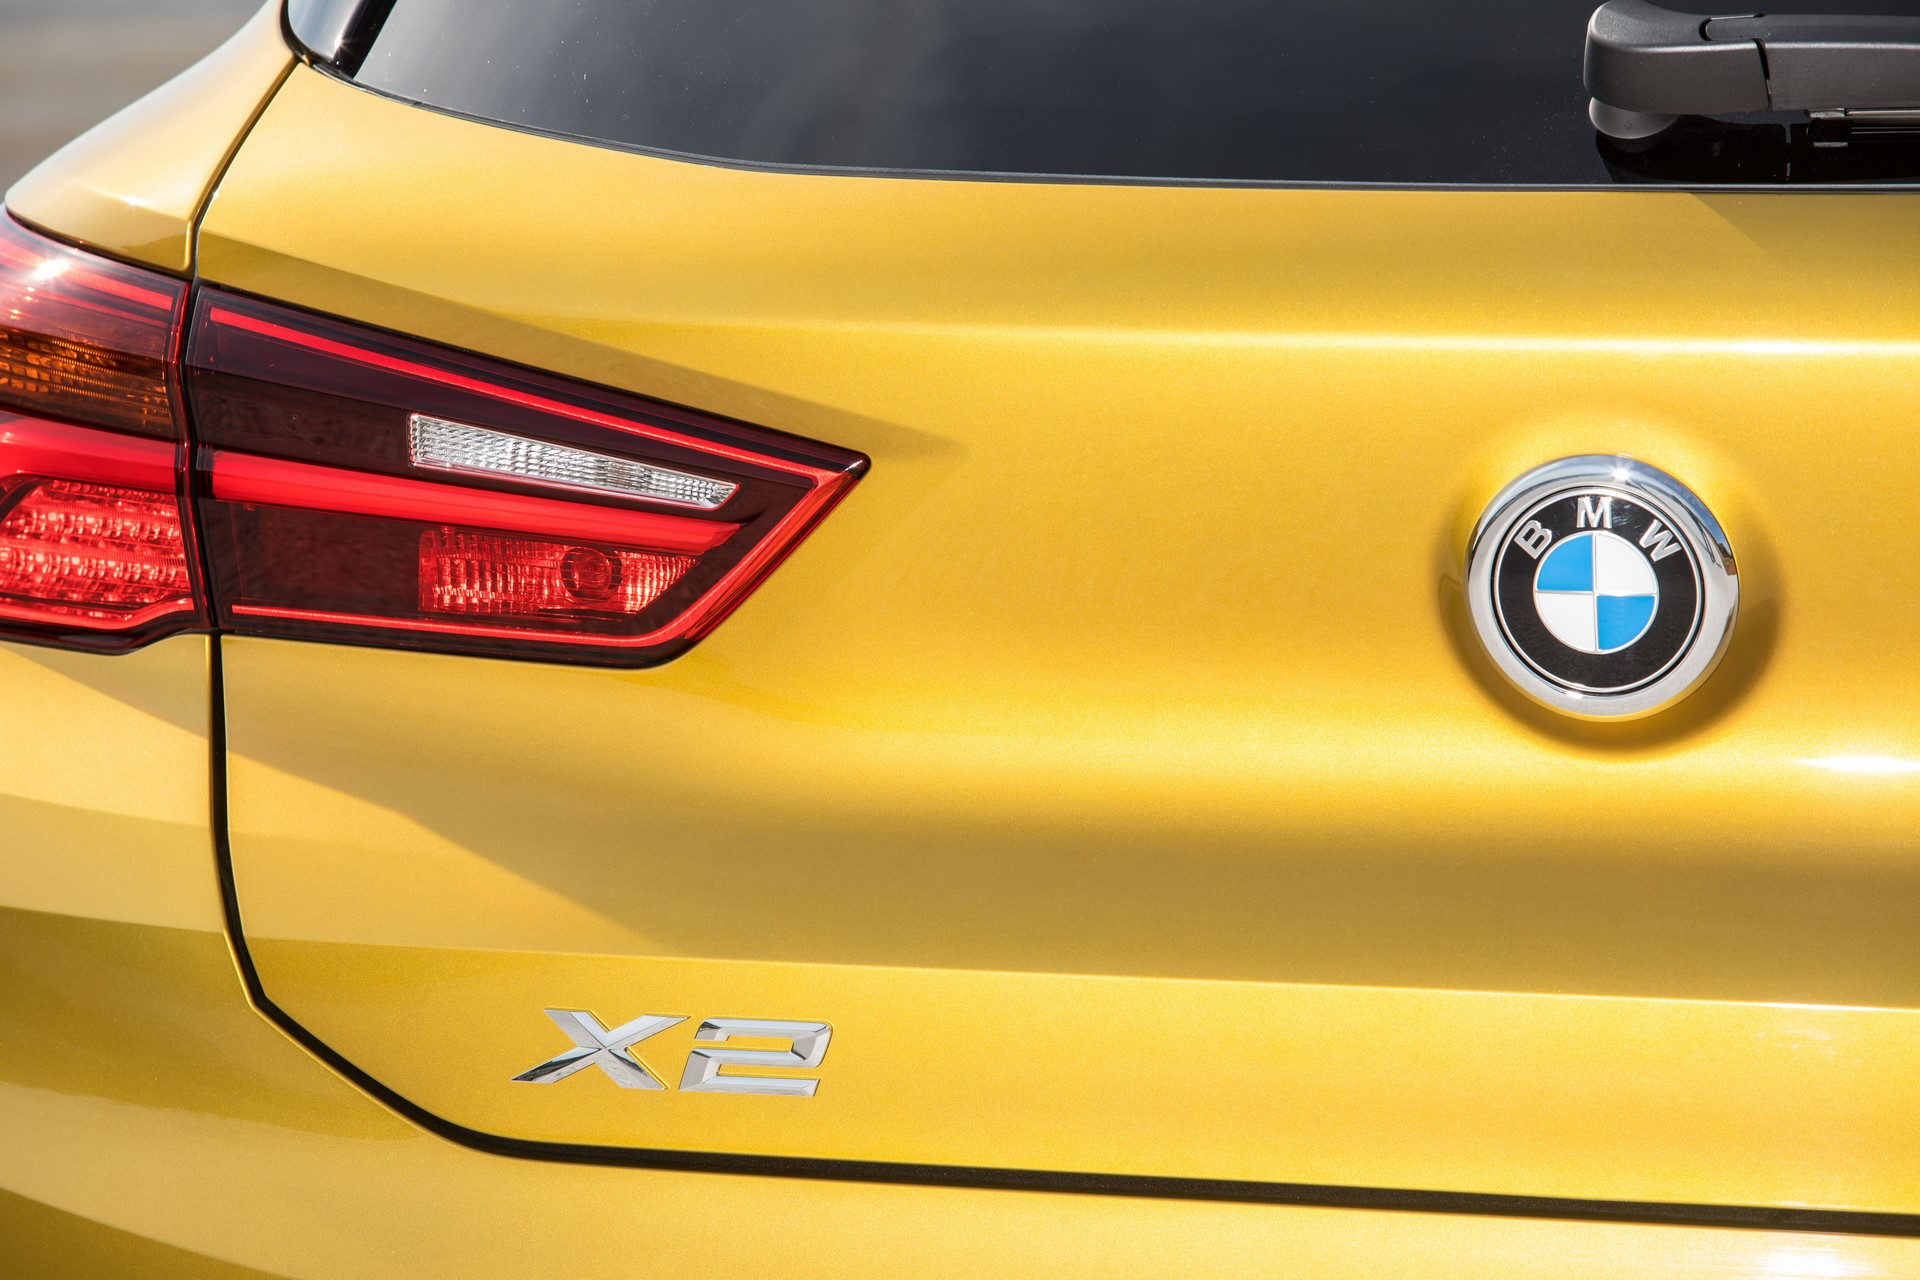 BMW X2 Greek 2018 (11)